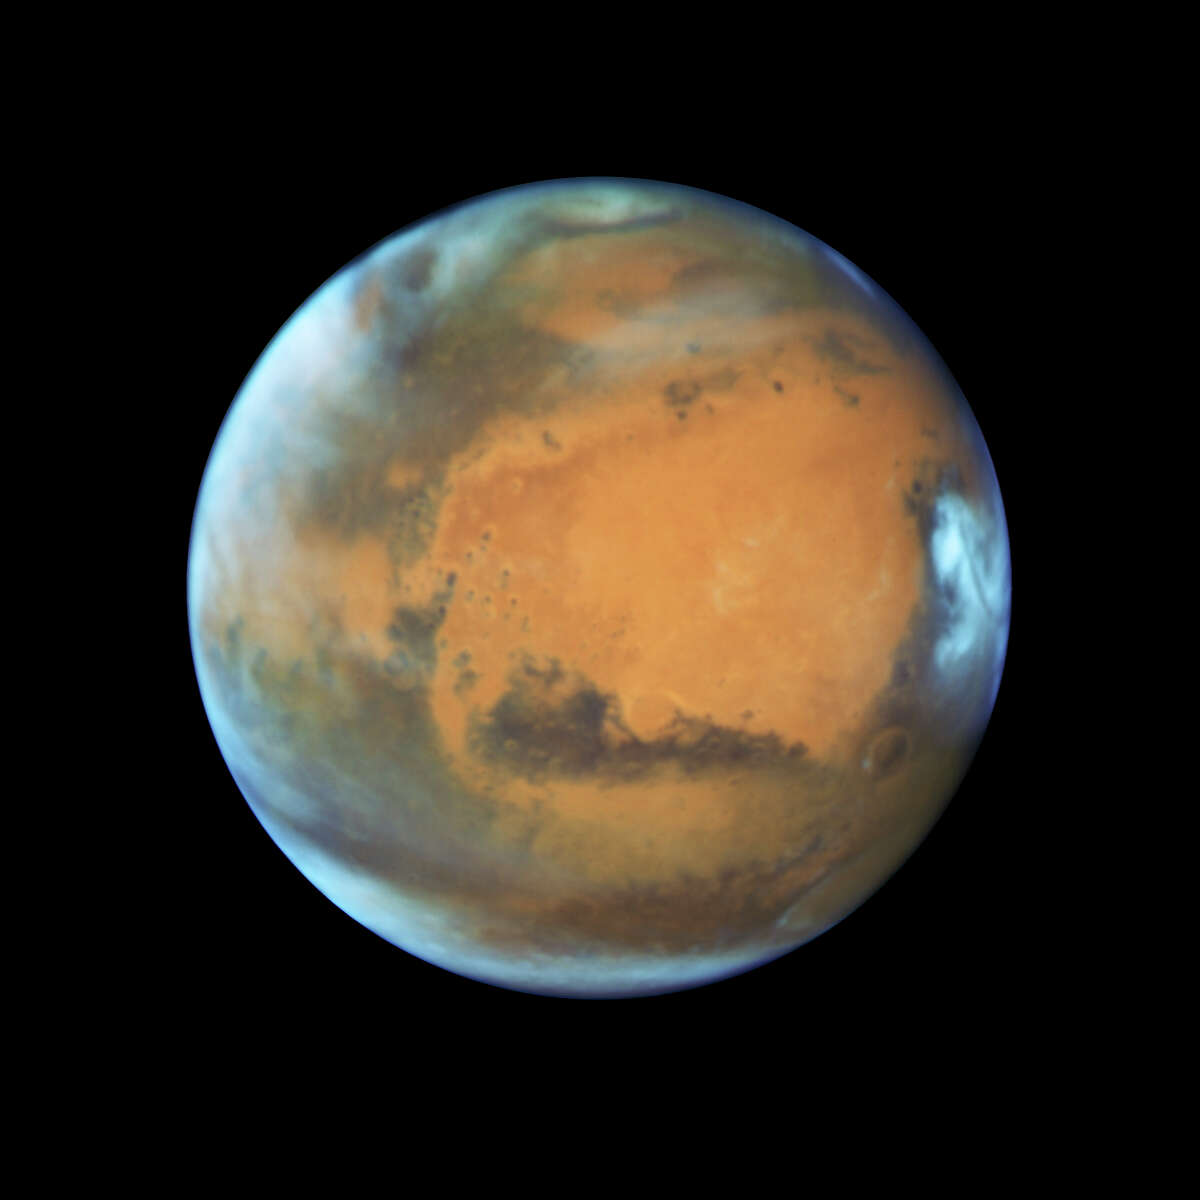 This May 12, 2016 image provided by NASA shows the planet Mars. On Sunday, May 22, 2016, the sun and Mars will be on exact opposite sides of Earth. (NASA/ESA/Hubble Heritage Team - STScI/AURA, J. Bell - ASU, M. Wolff - Space Science Institute via AP)